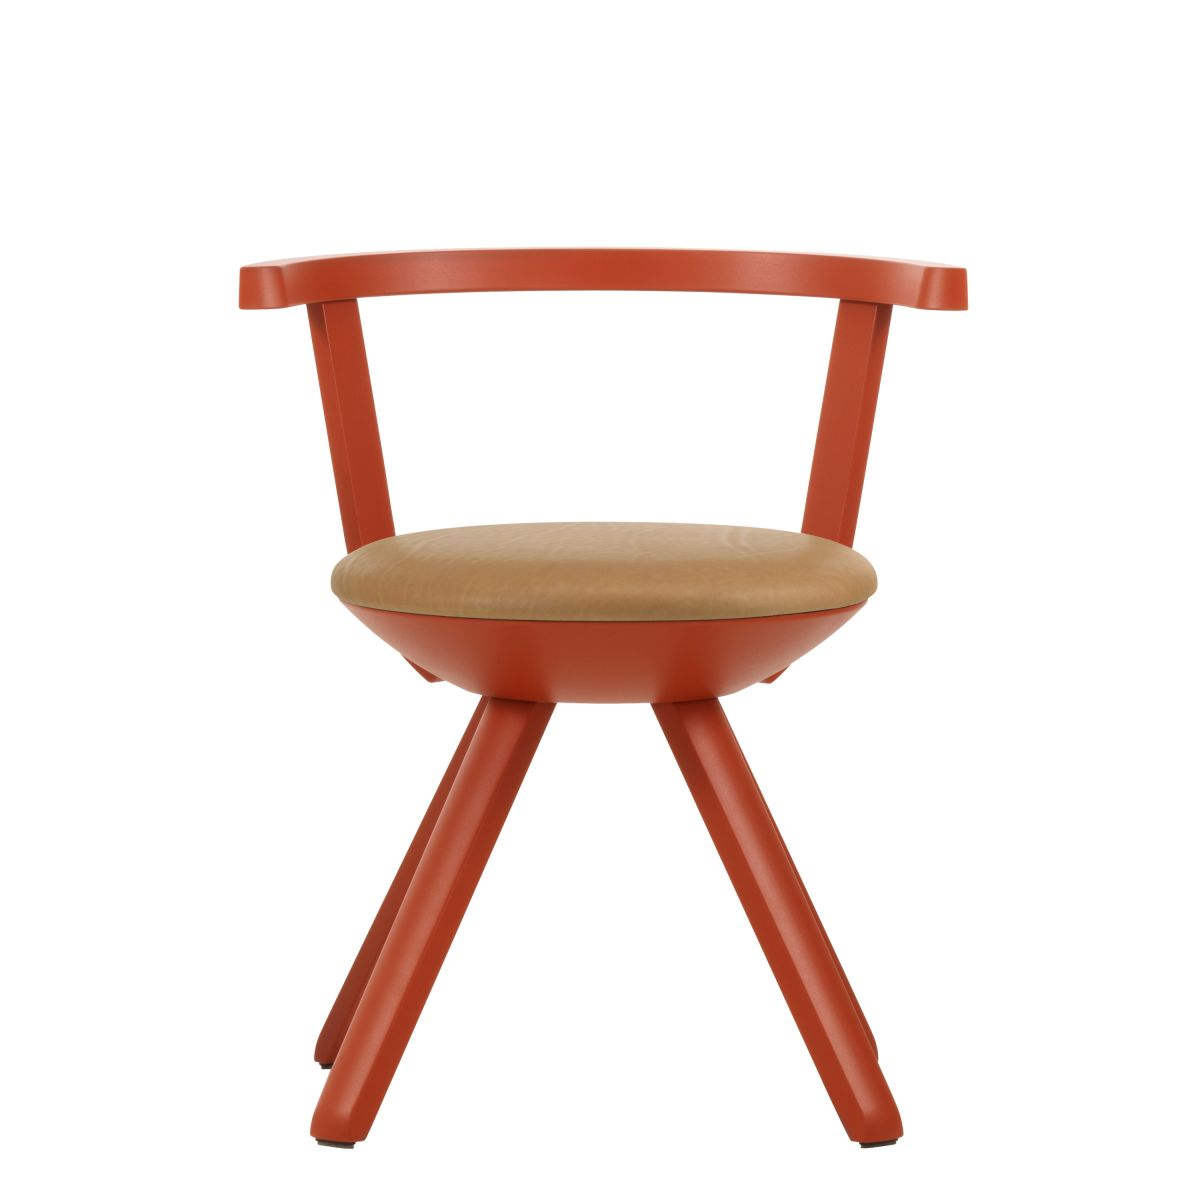 Rival-Chair-Kg001-Red-Lacquer-Caramel-Leather-Upholstery_Web-1975952